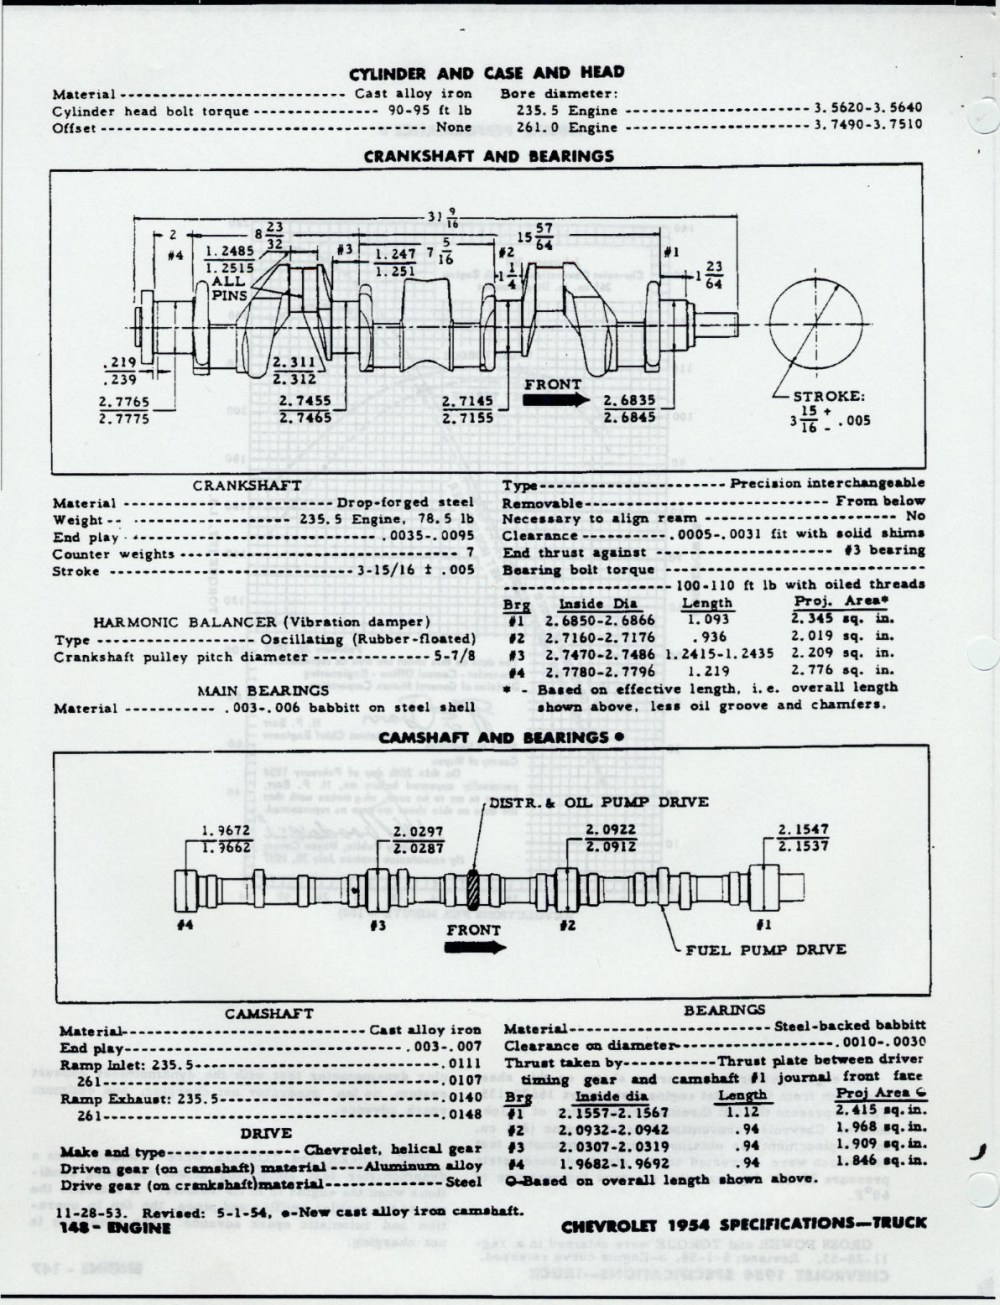 medium resolution of 235 chevy engine wiring diagram wiring library53 chevrolet automobile ac oil filter diagram engine